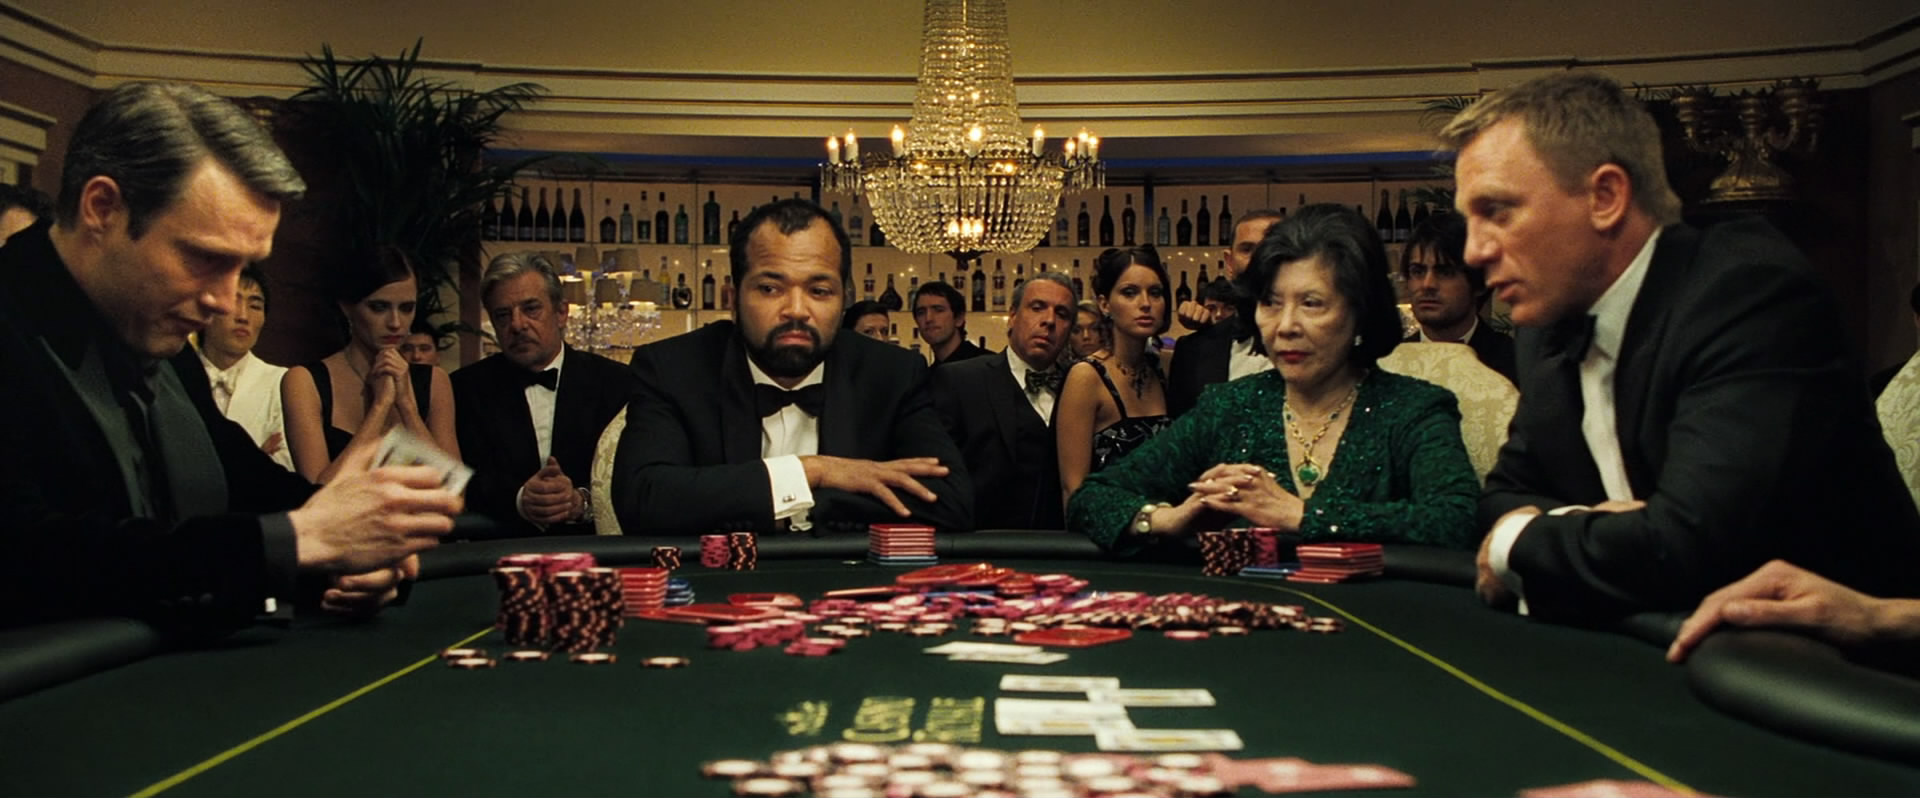 Know everything about websites like maxbet and the resemblance they have to online casinos